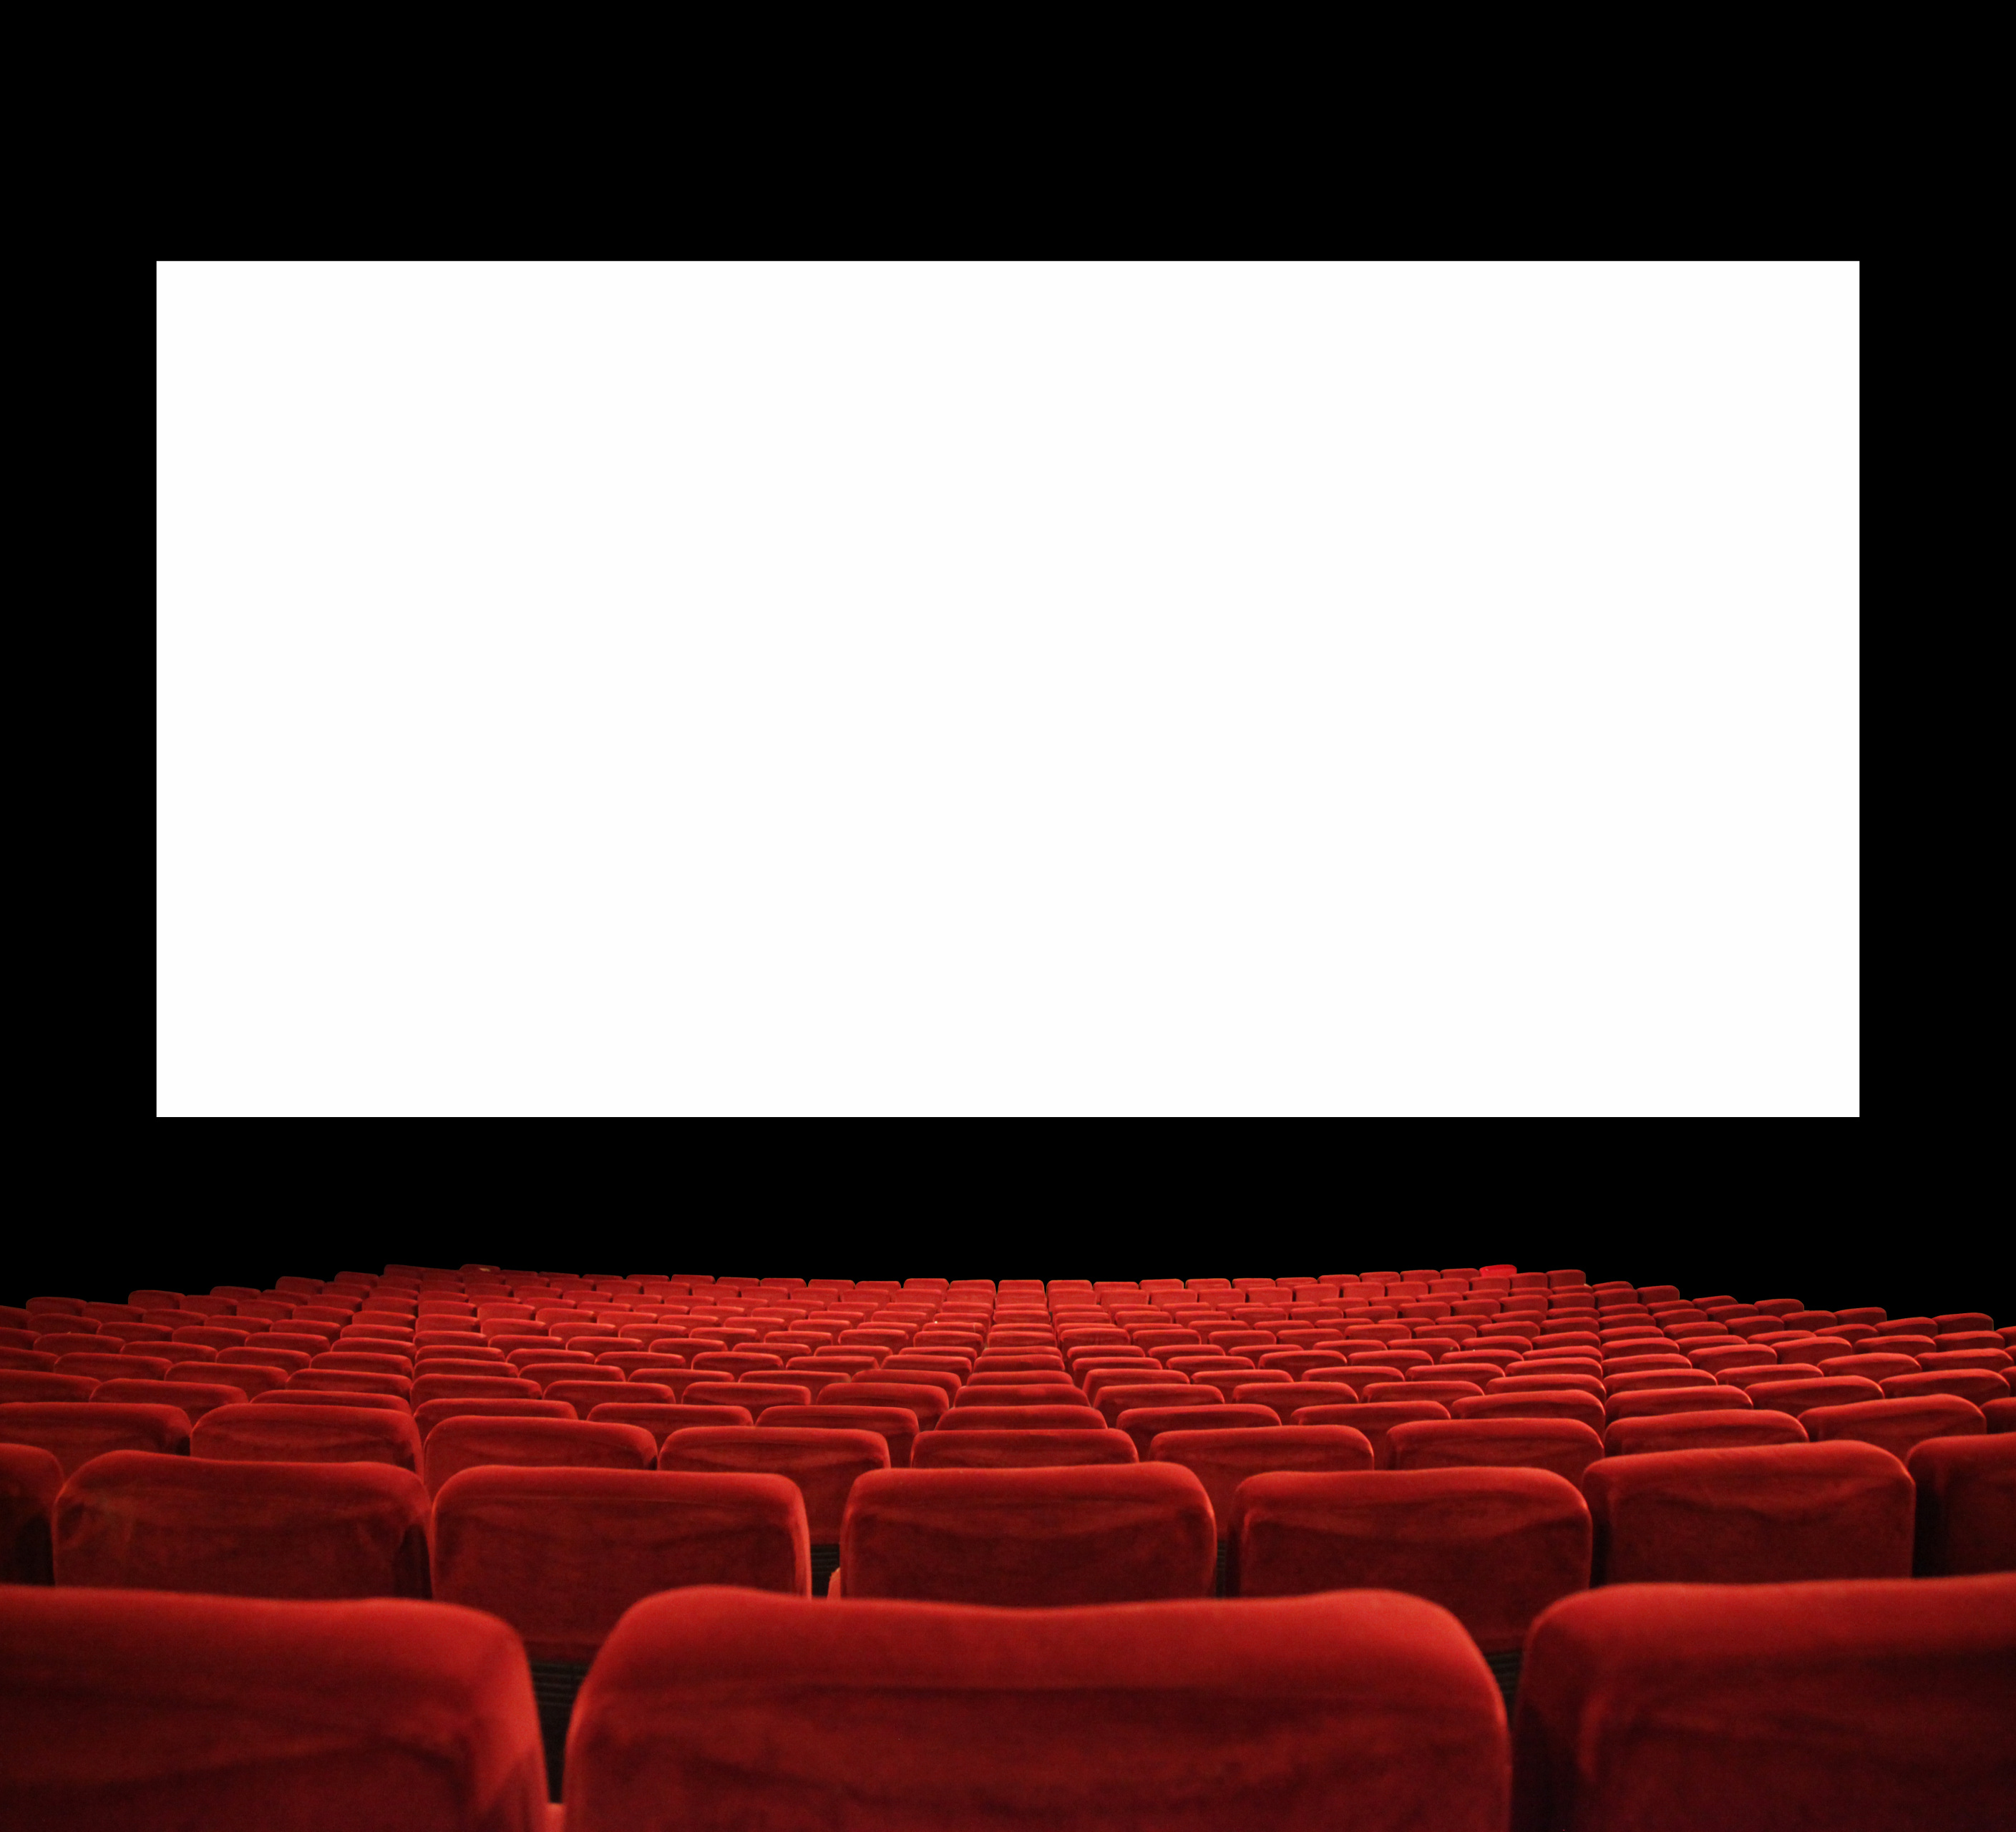 movie screen clipart movie theater screen clipart Drive in Movie Clip Art